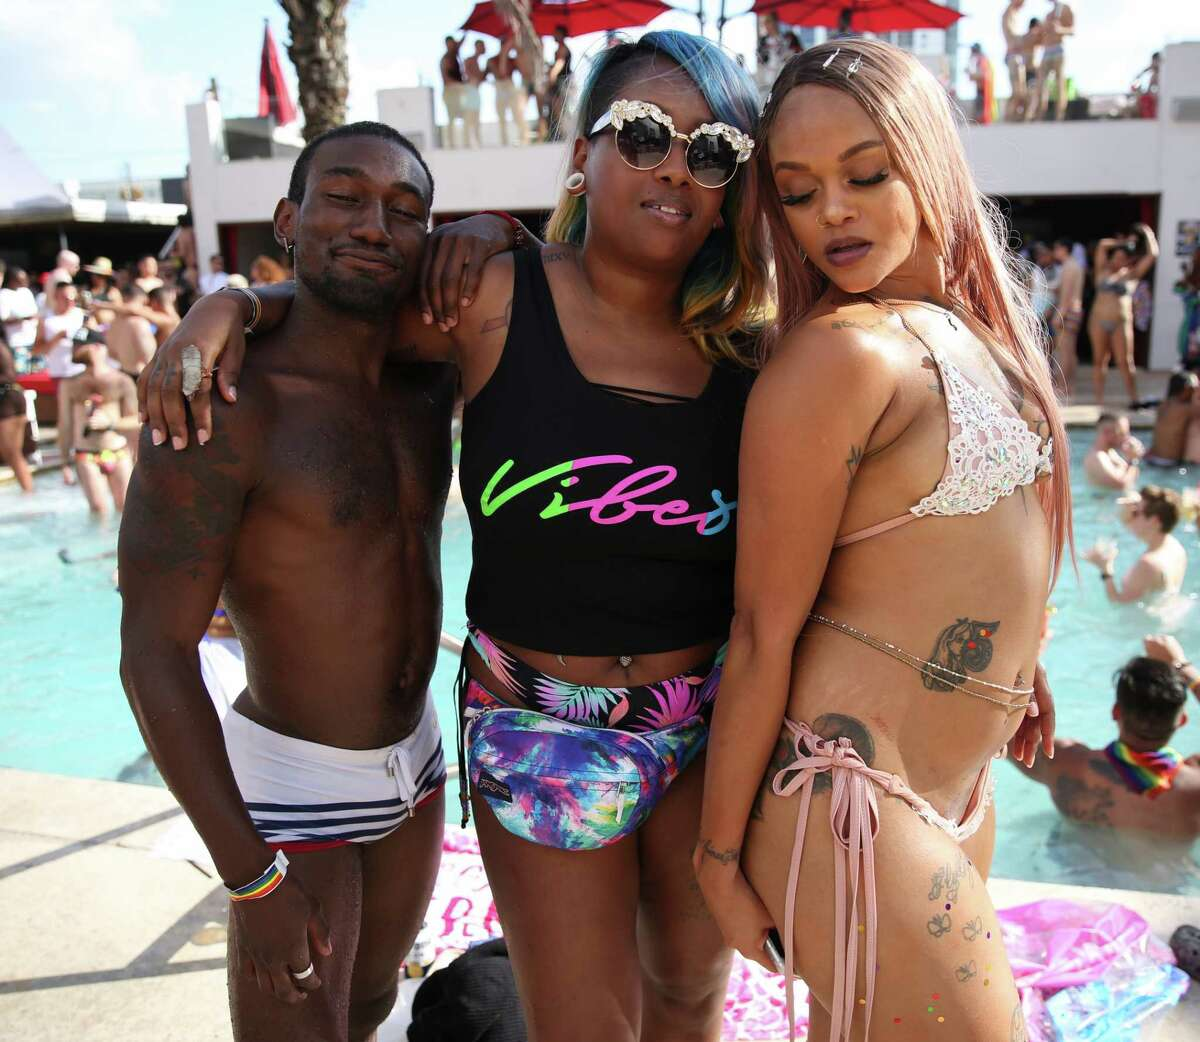 People pose for photos at the Baewatch x Salvation 2019 Official Pride Pool Party in Houston, Saturday, June 15, 2019.